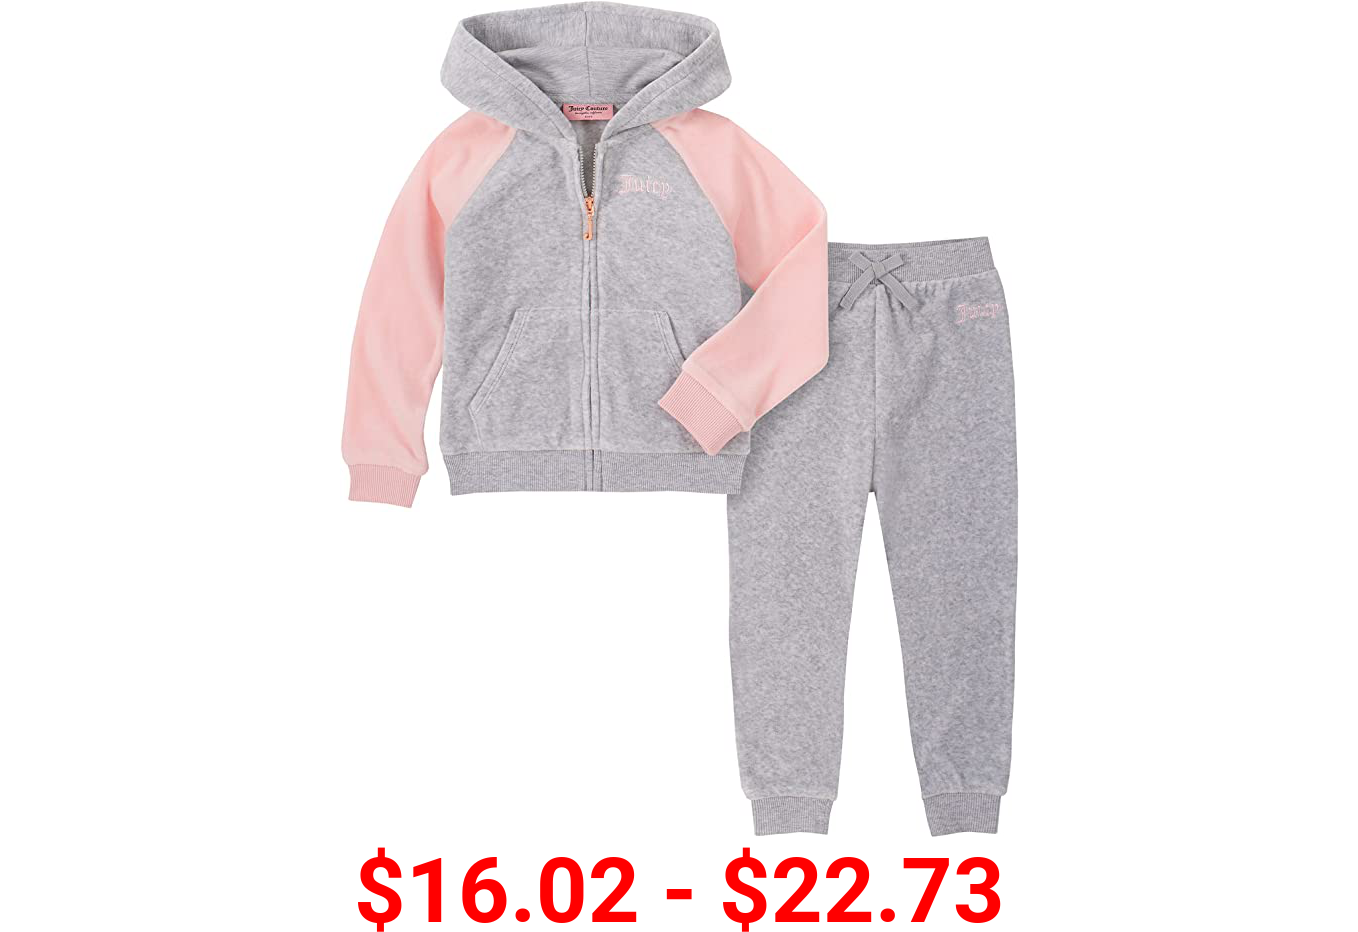 Juicy Couture girls 2 Pieces Hooded Jog Set